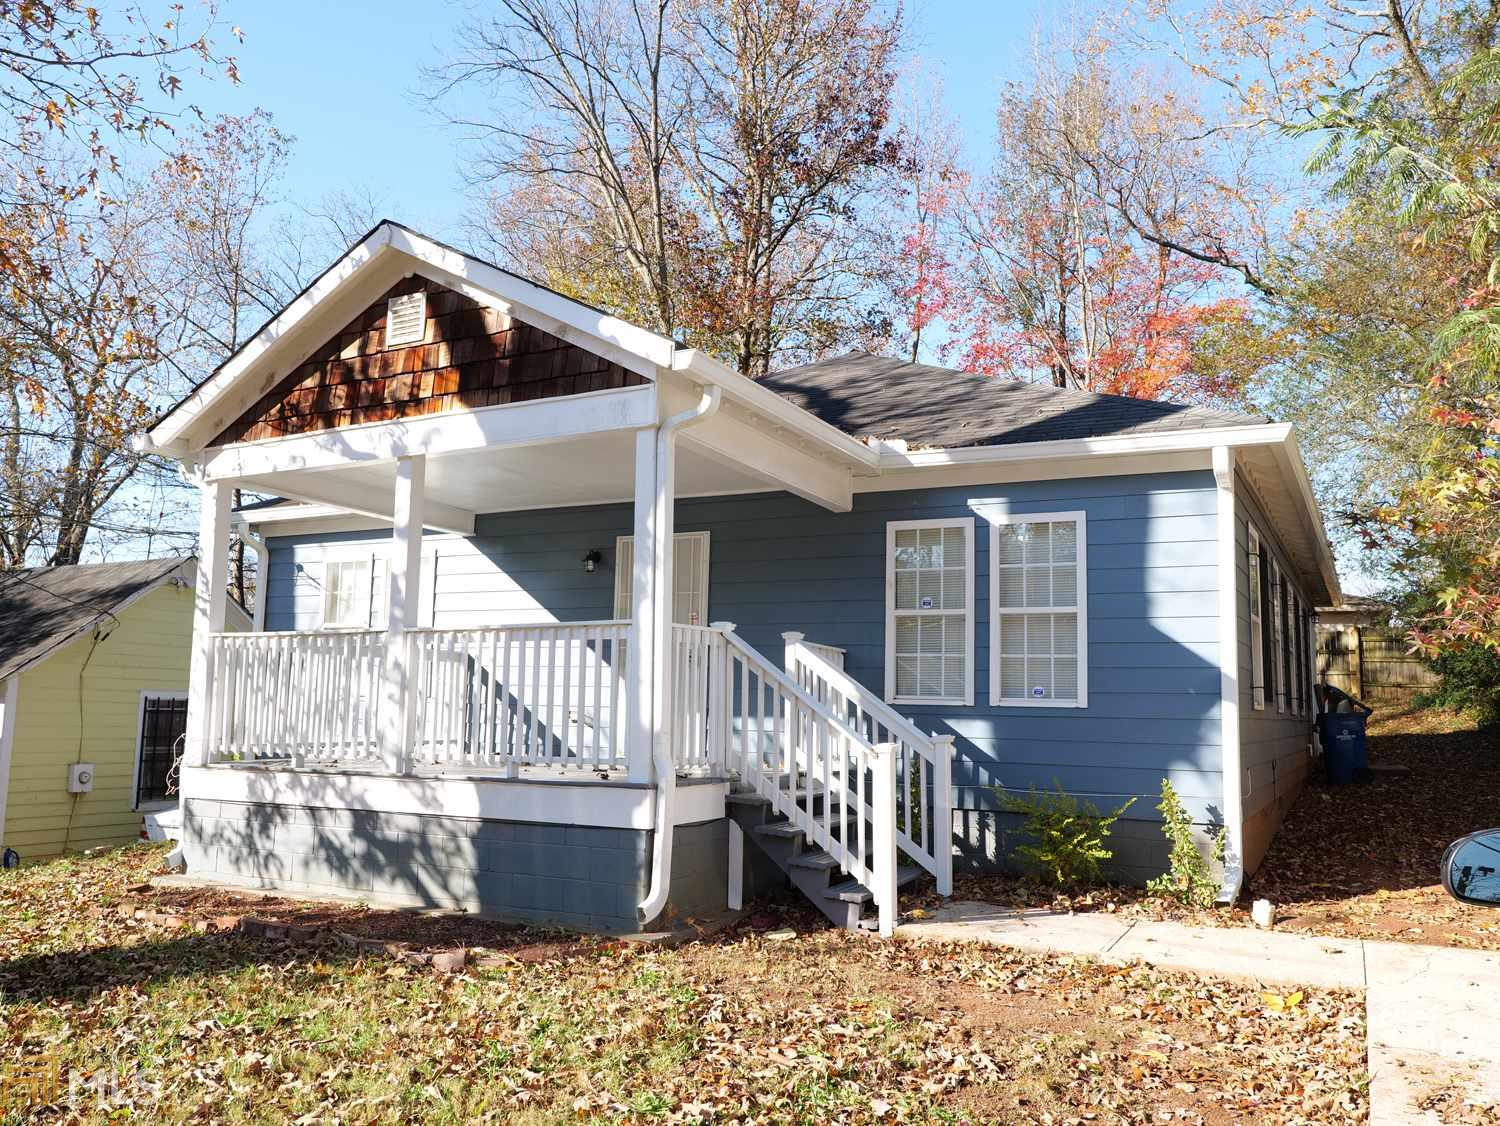 1935 Dunlap Ave, East Point, Georgia 30344, 3 Bedrooms Bedrooms, ,2 BathroomsBathrooms,Single Family,For Sale,1935 Dunlap Ave,1,8936469